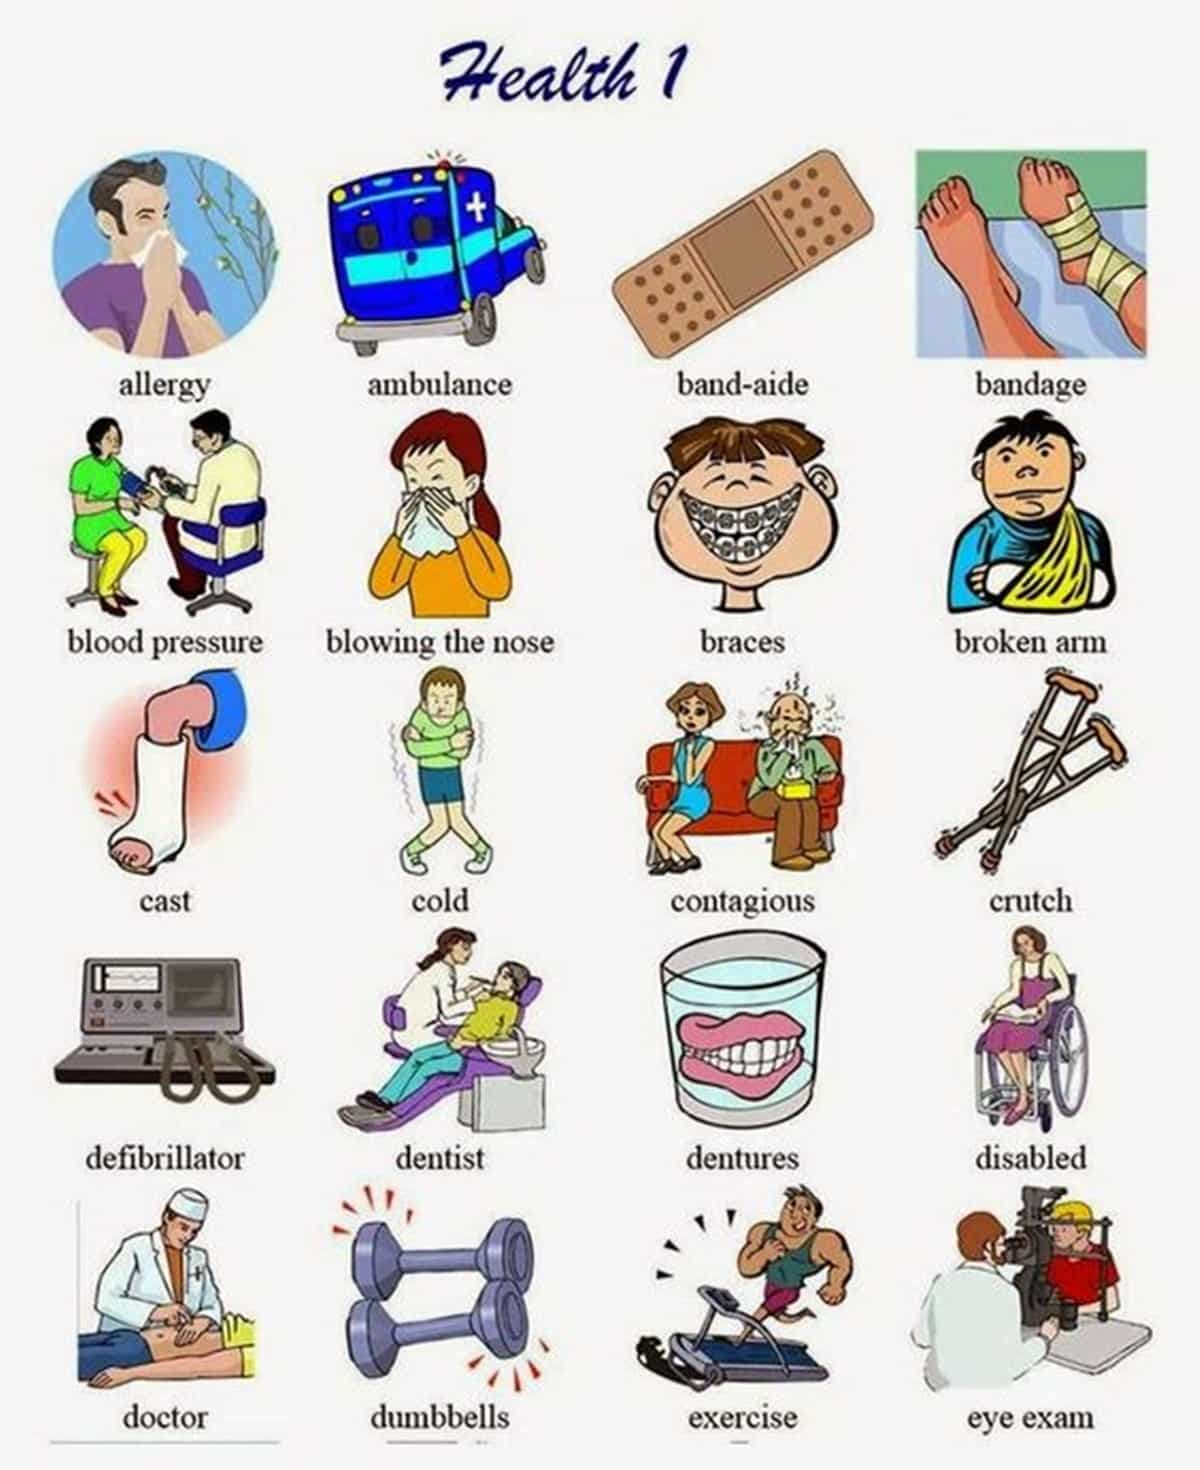 Health Vocabulary - How to talk about health problems in English